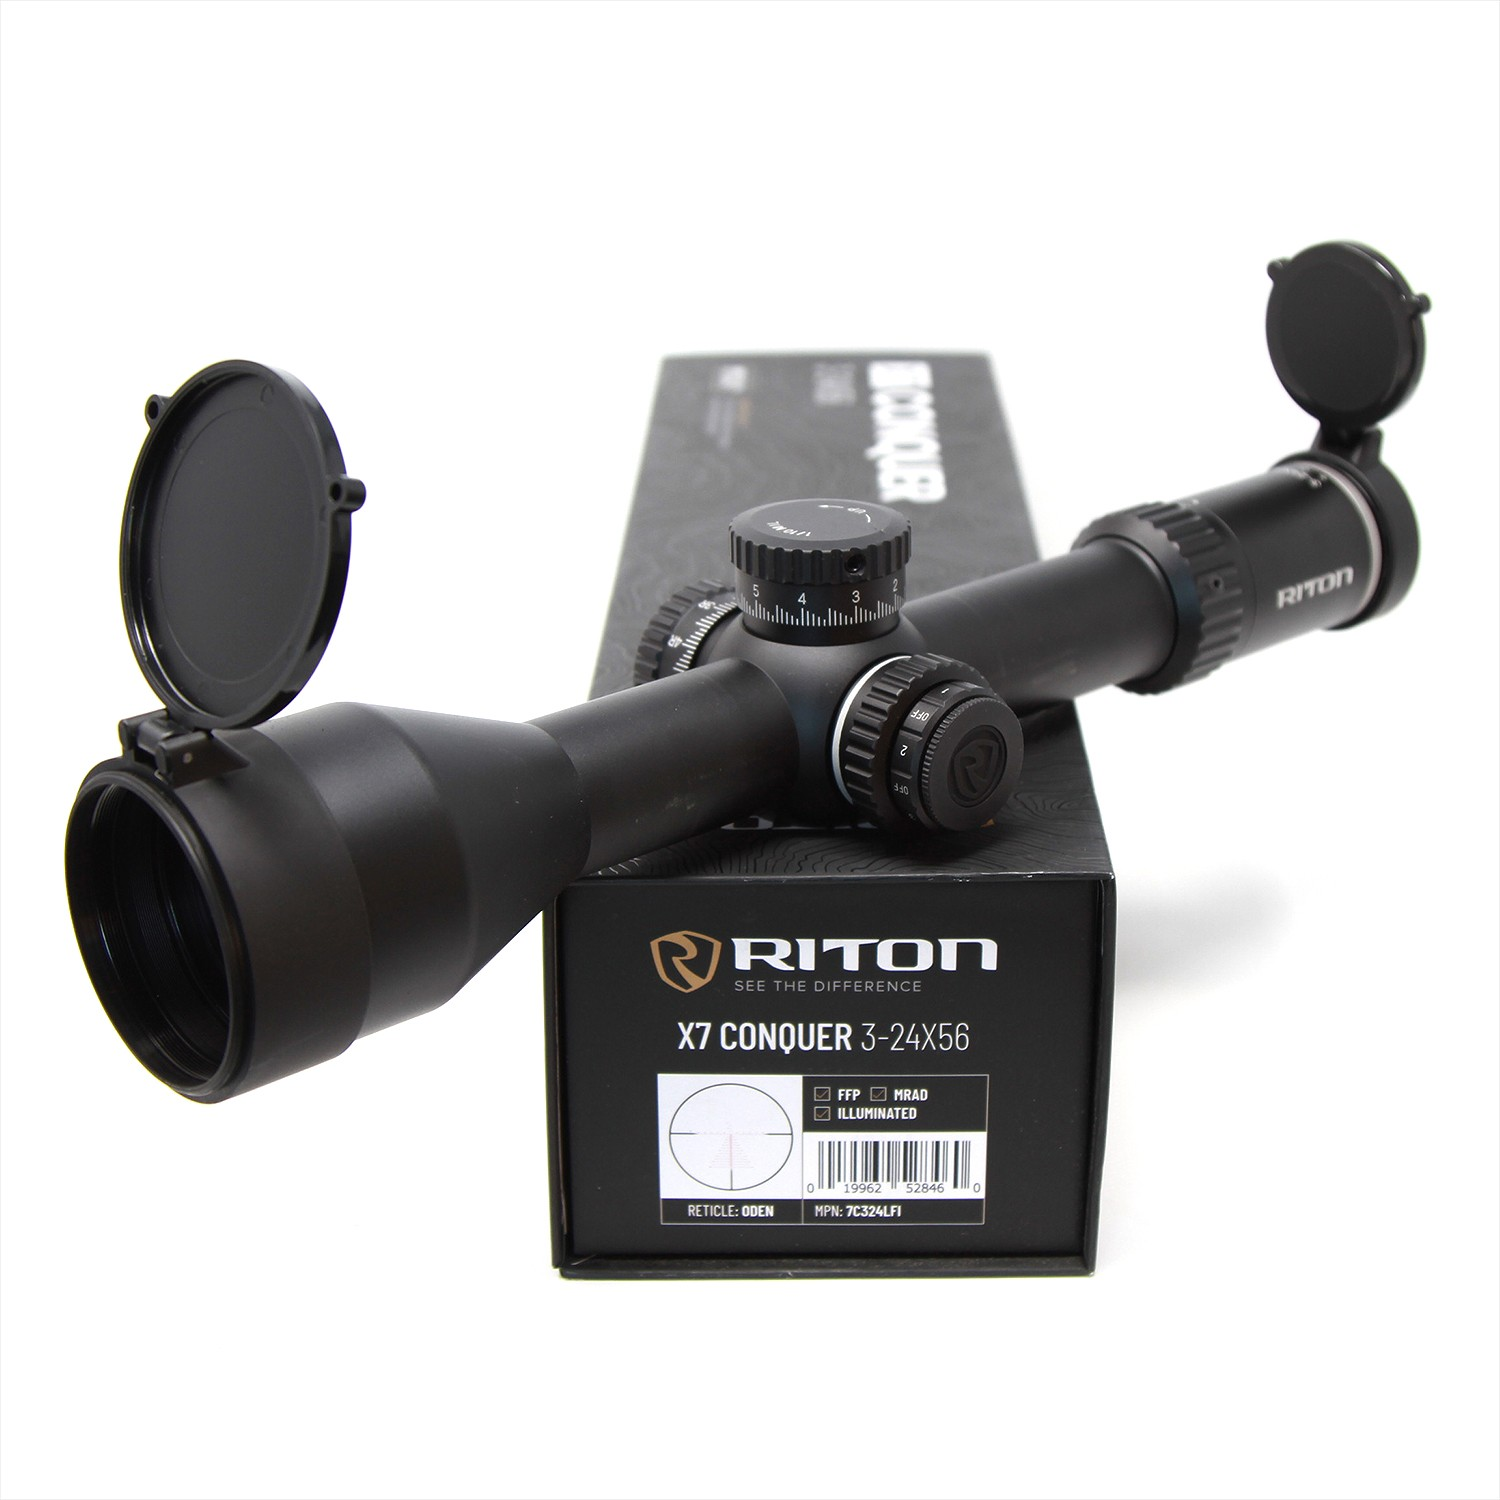 Riton 3-24x56 X7 Conquer 34mm Rifle Scope DEMO-B